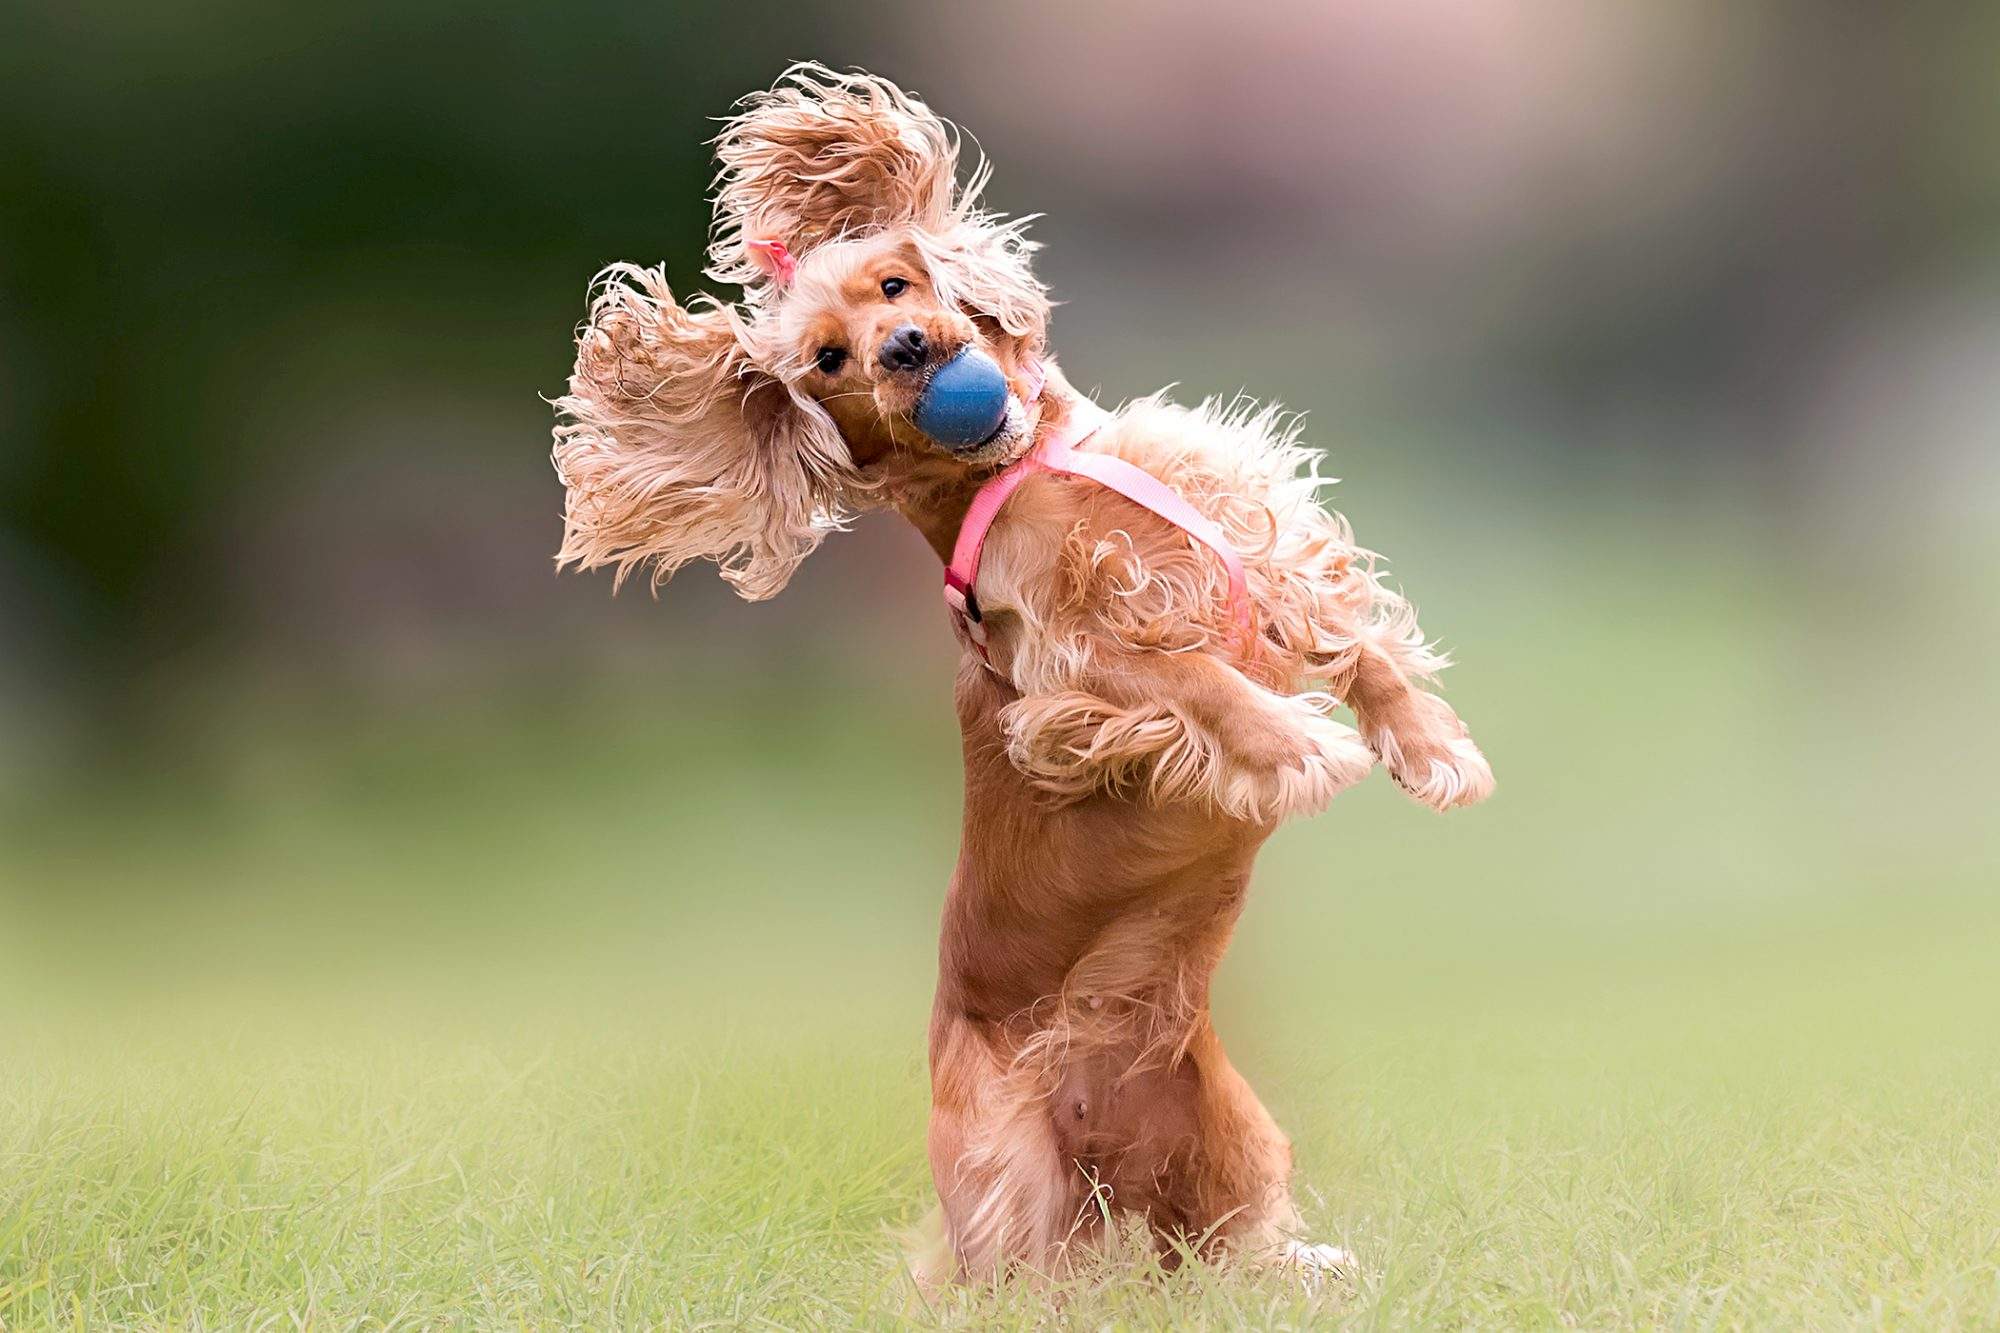 cocker spaniel jumping with ball in mouth